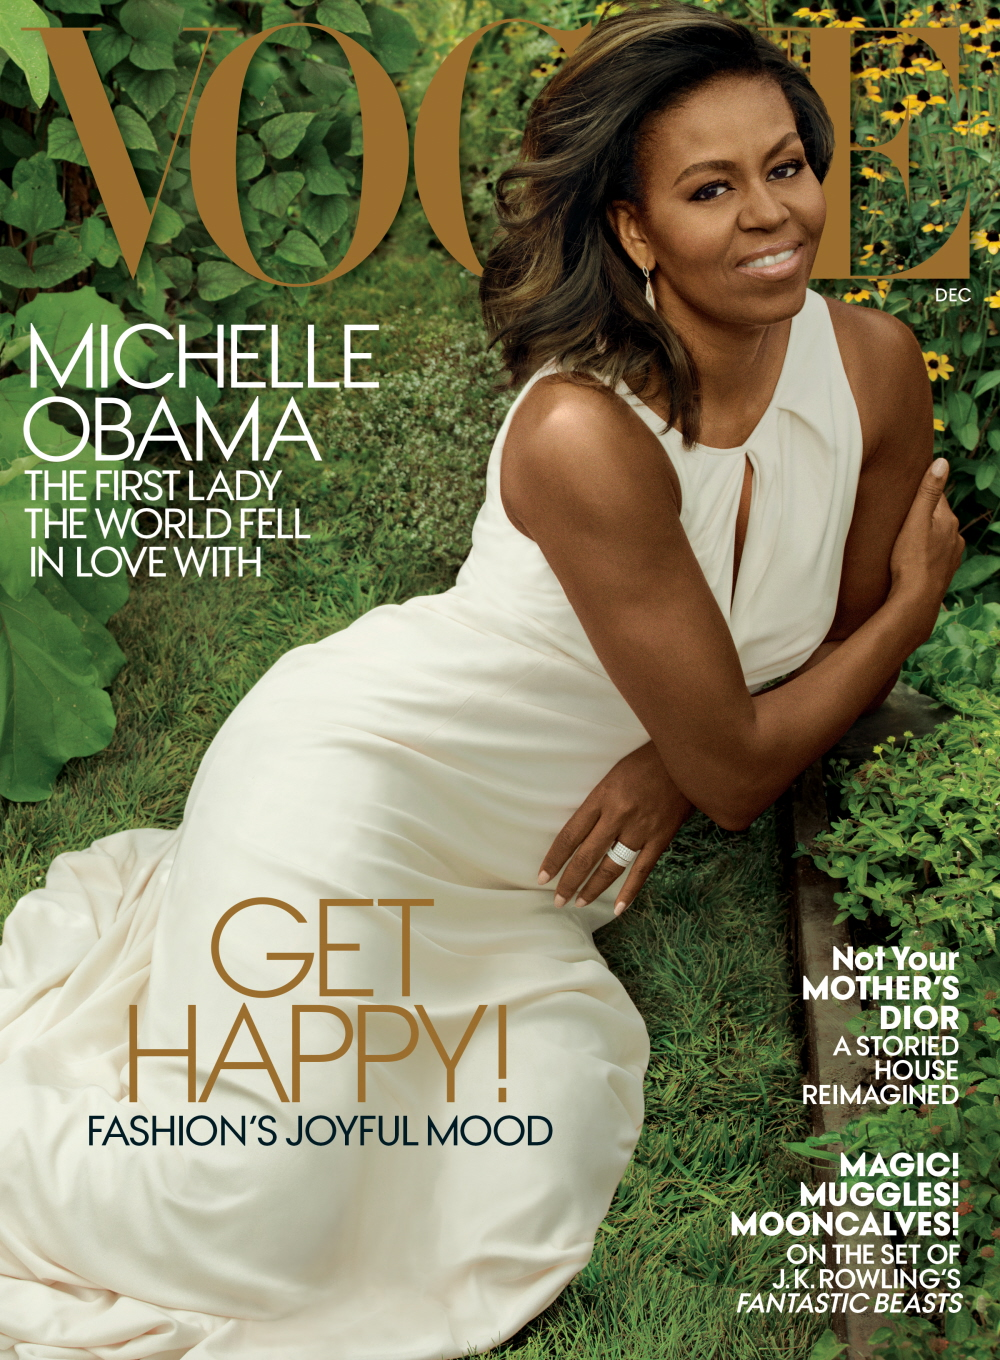 FASHIONABLE FLOTUS: Michelle Obama Covers Vogue December 2016 image